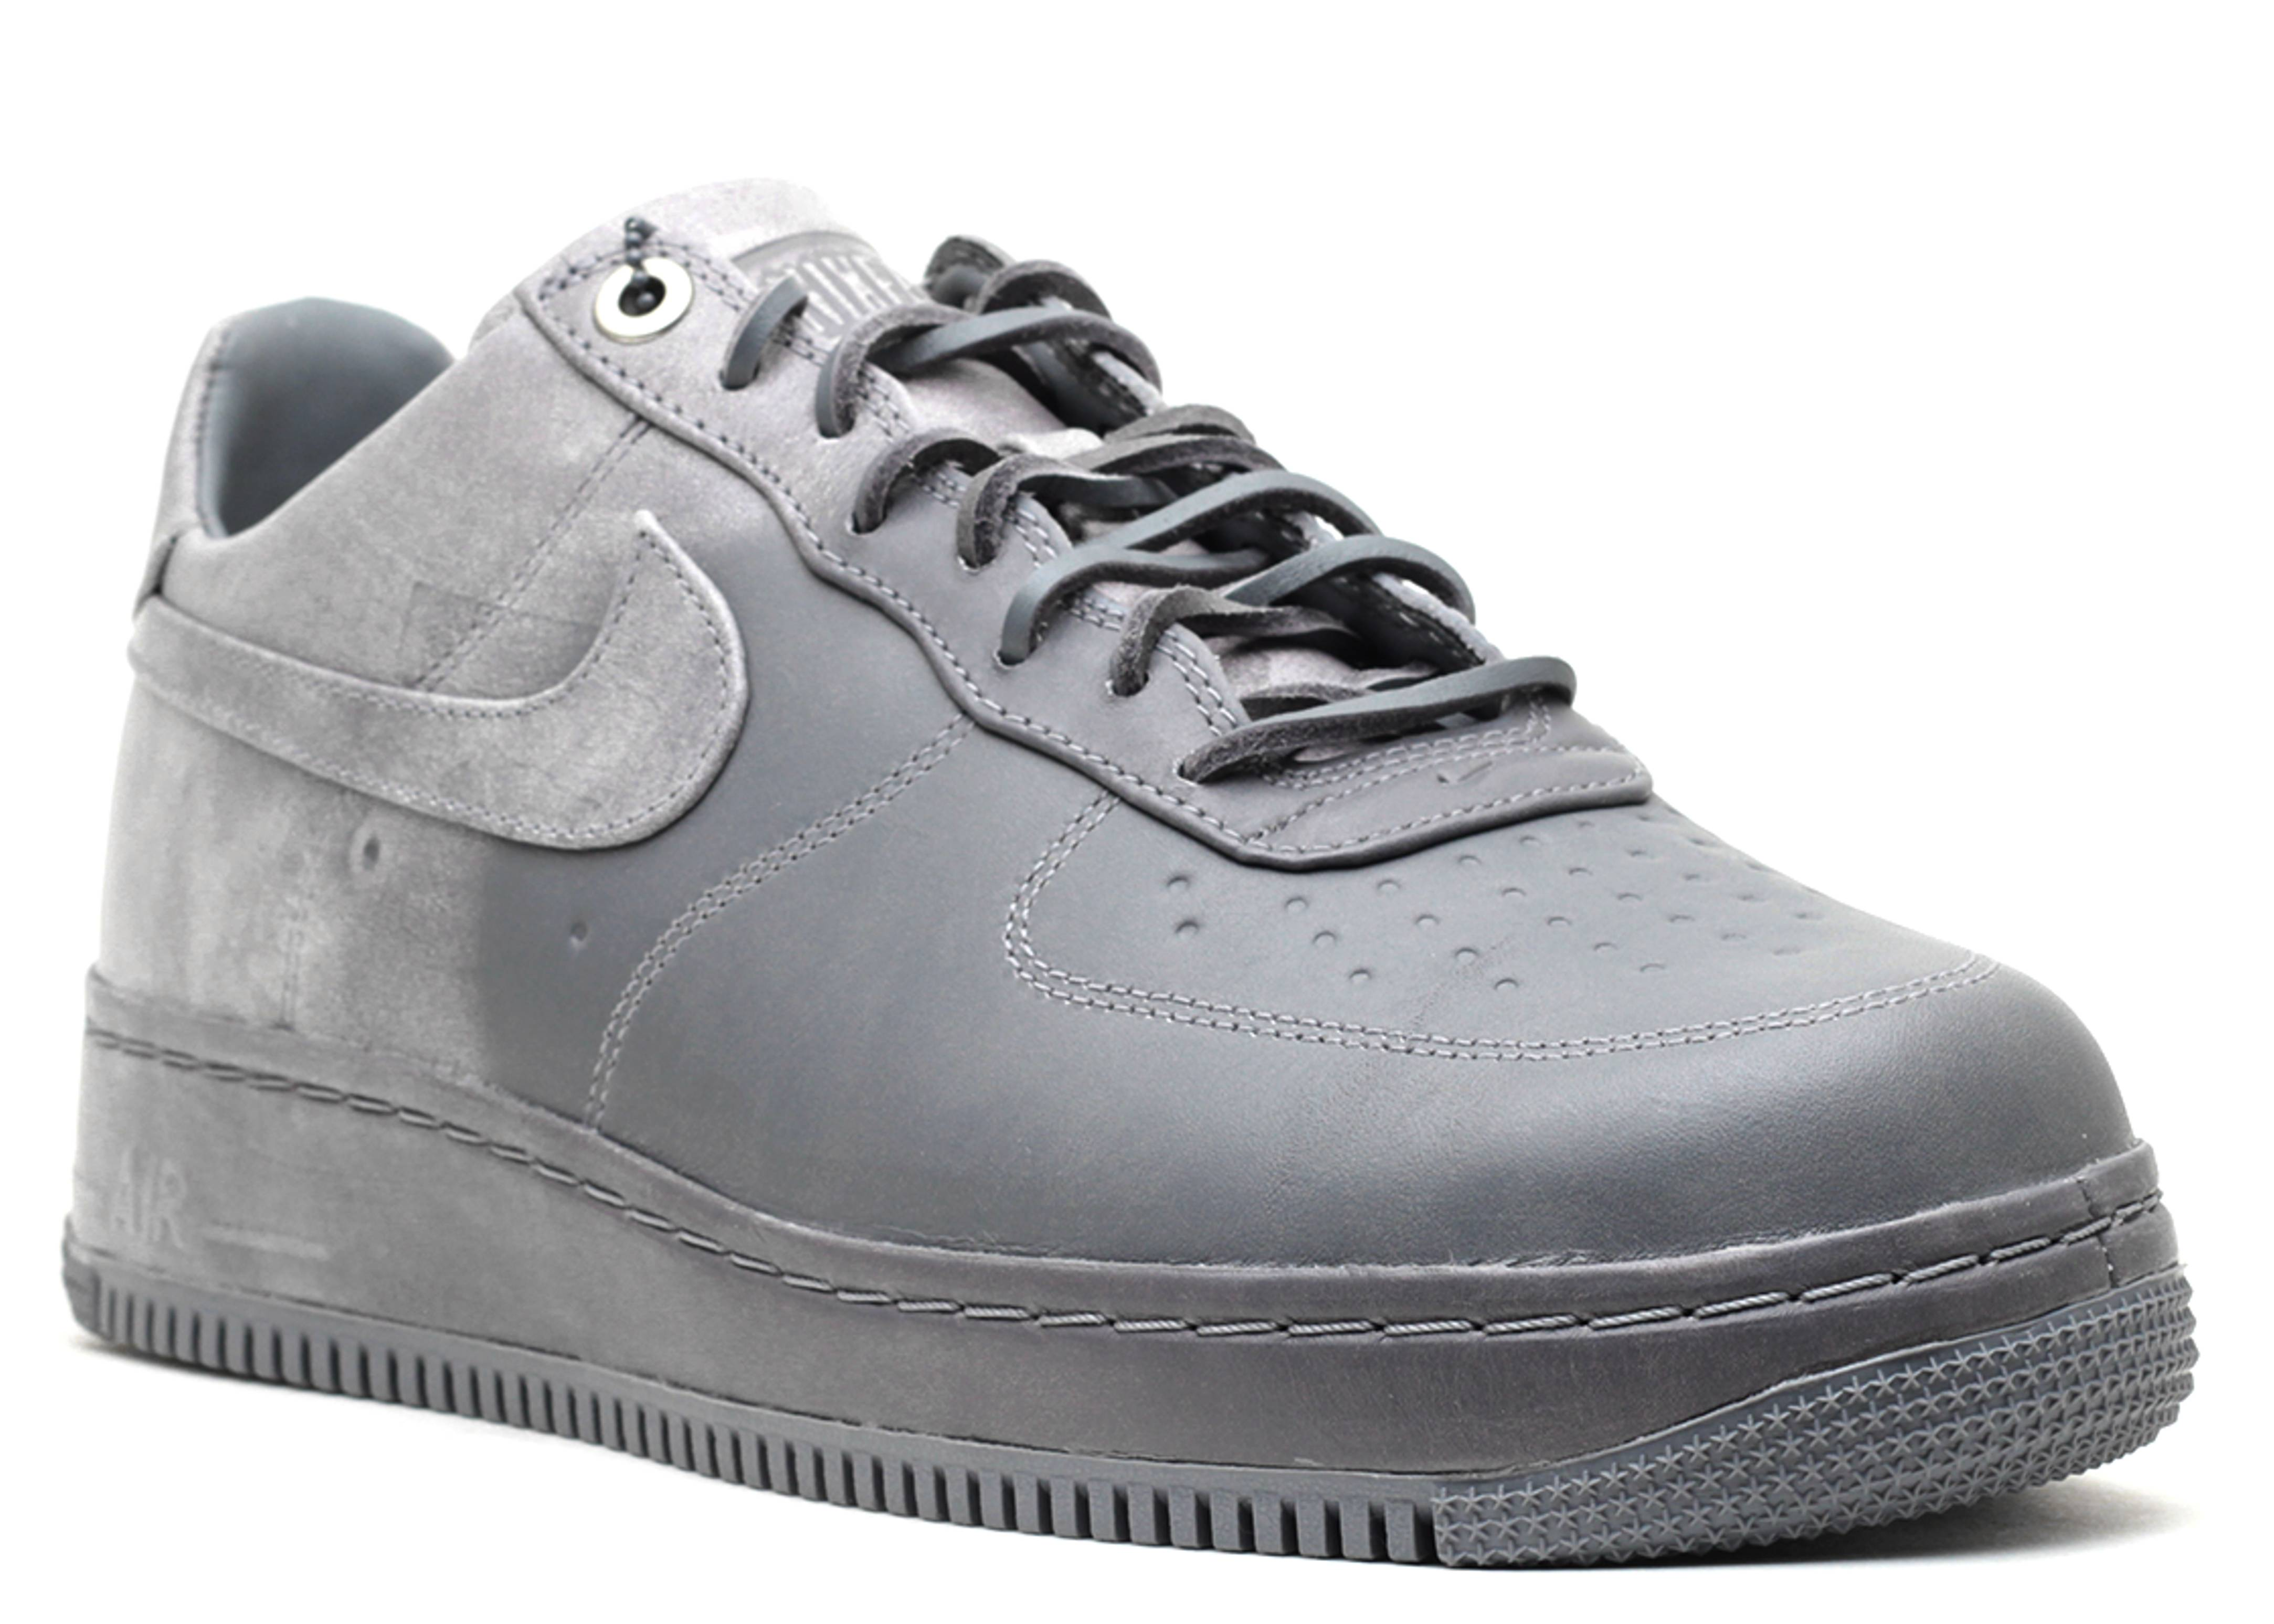 air force 1 low cmft pigalle sp